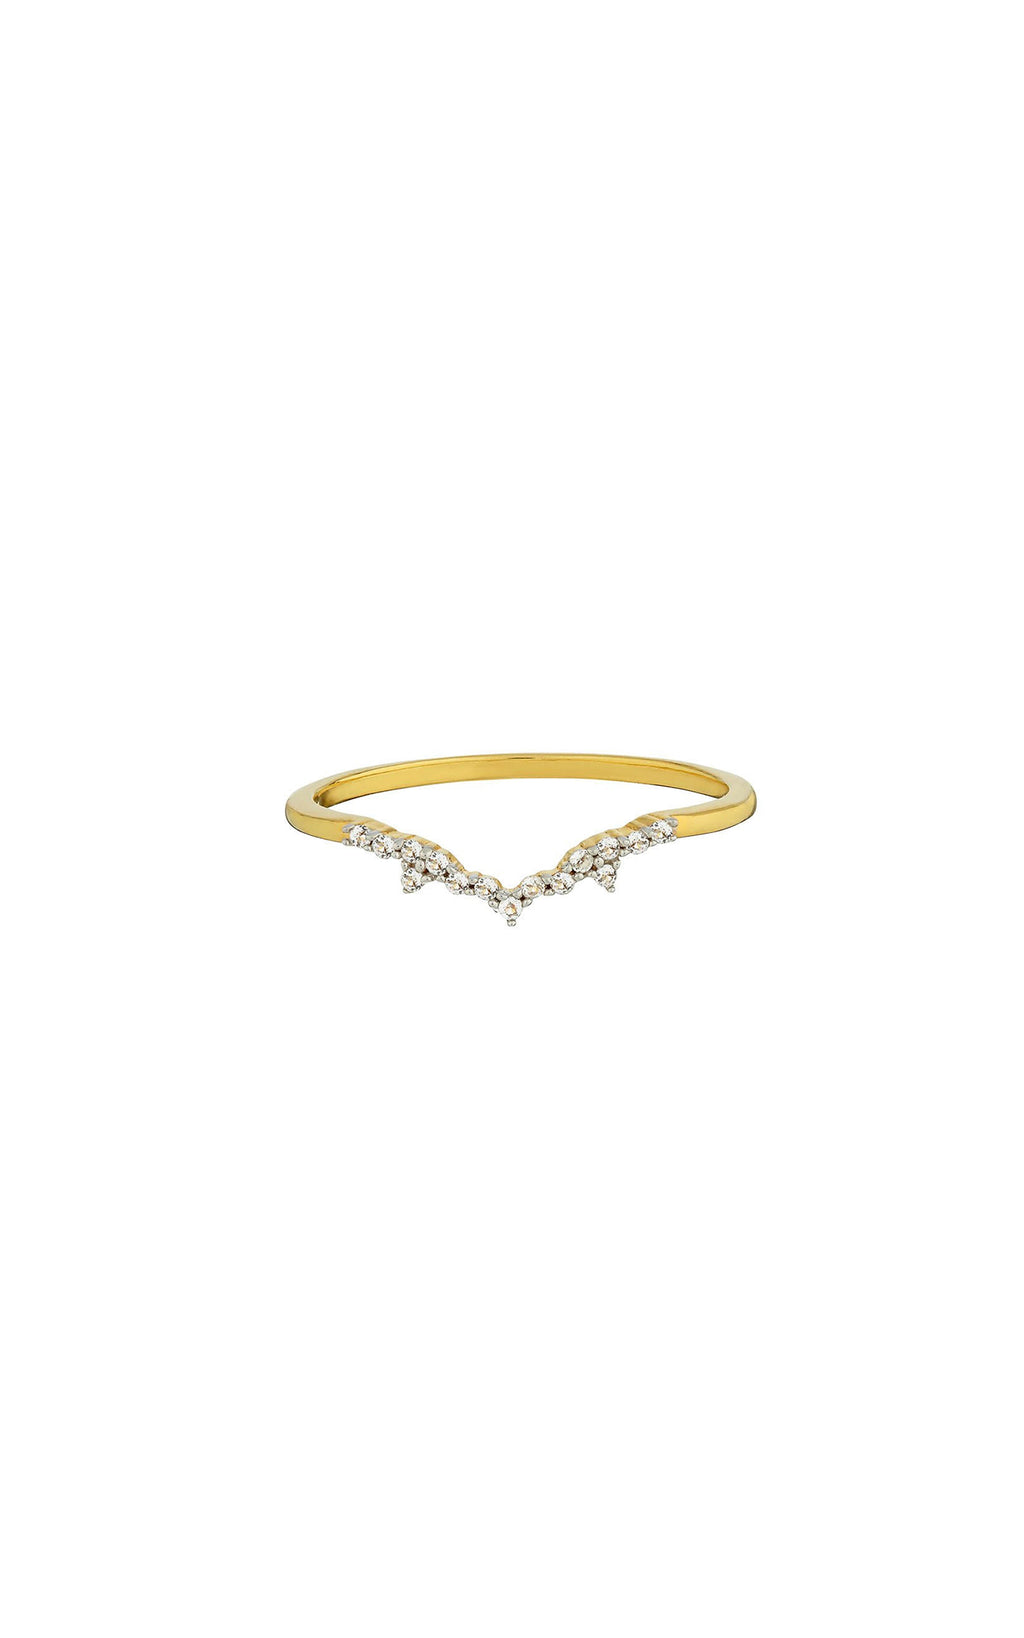 Carrie Elizabeth Milky Way 14k Gold Vermeil Diamond Ring